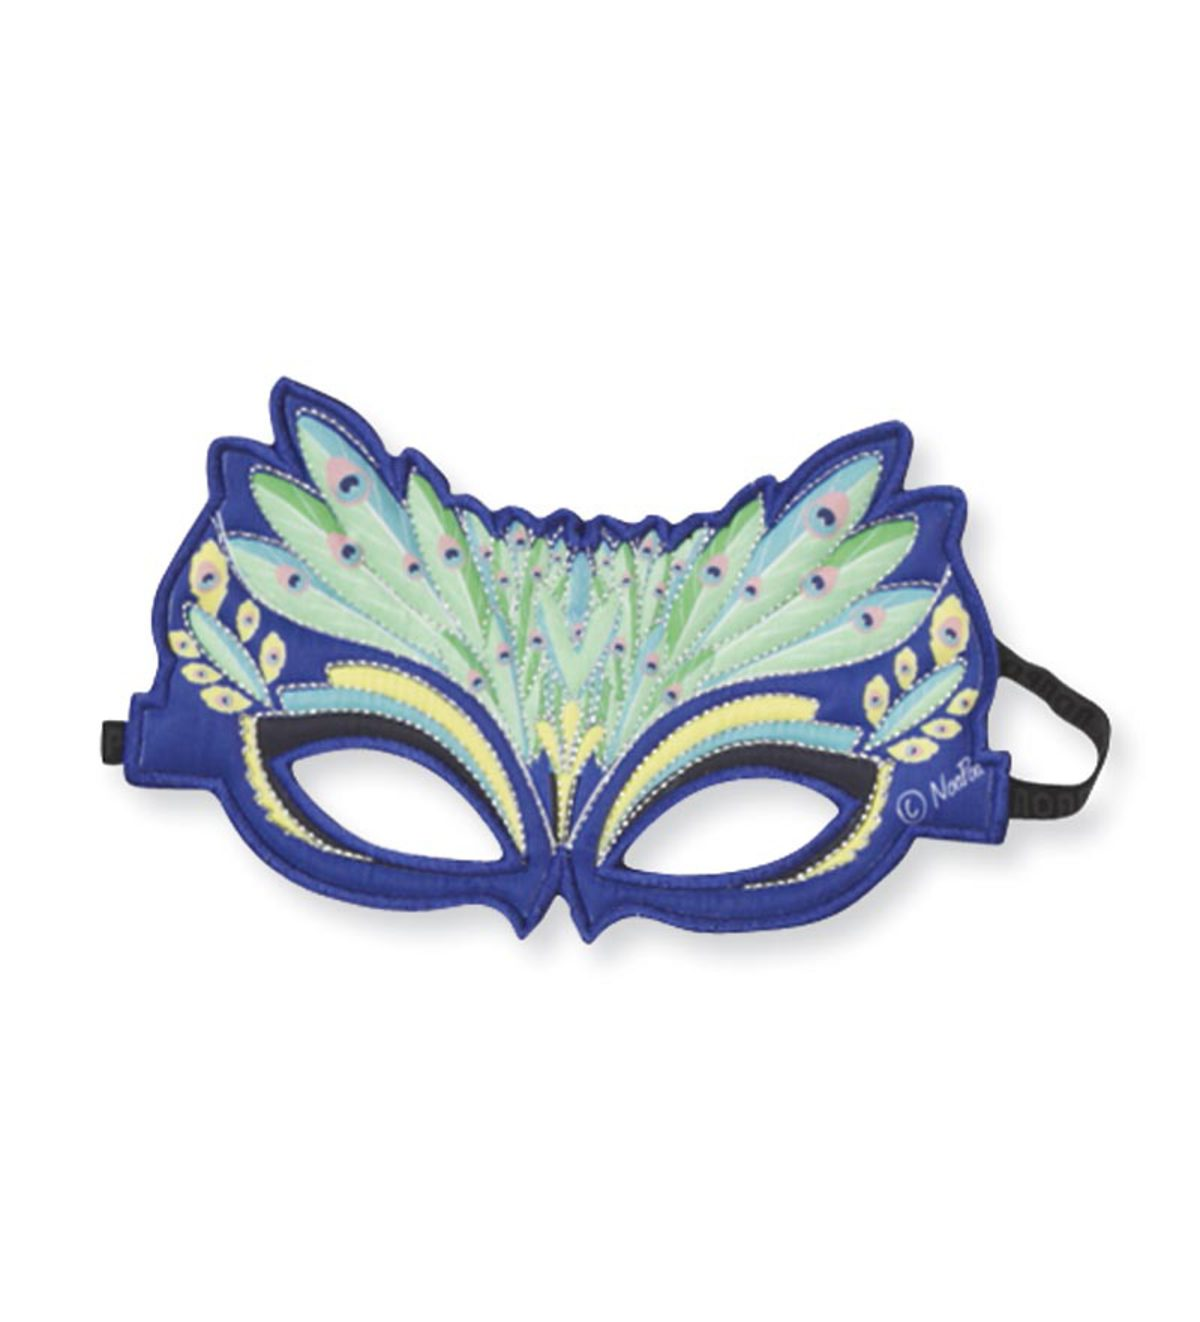 Fanciful Fabric Peacock Mask